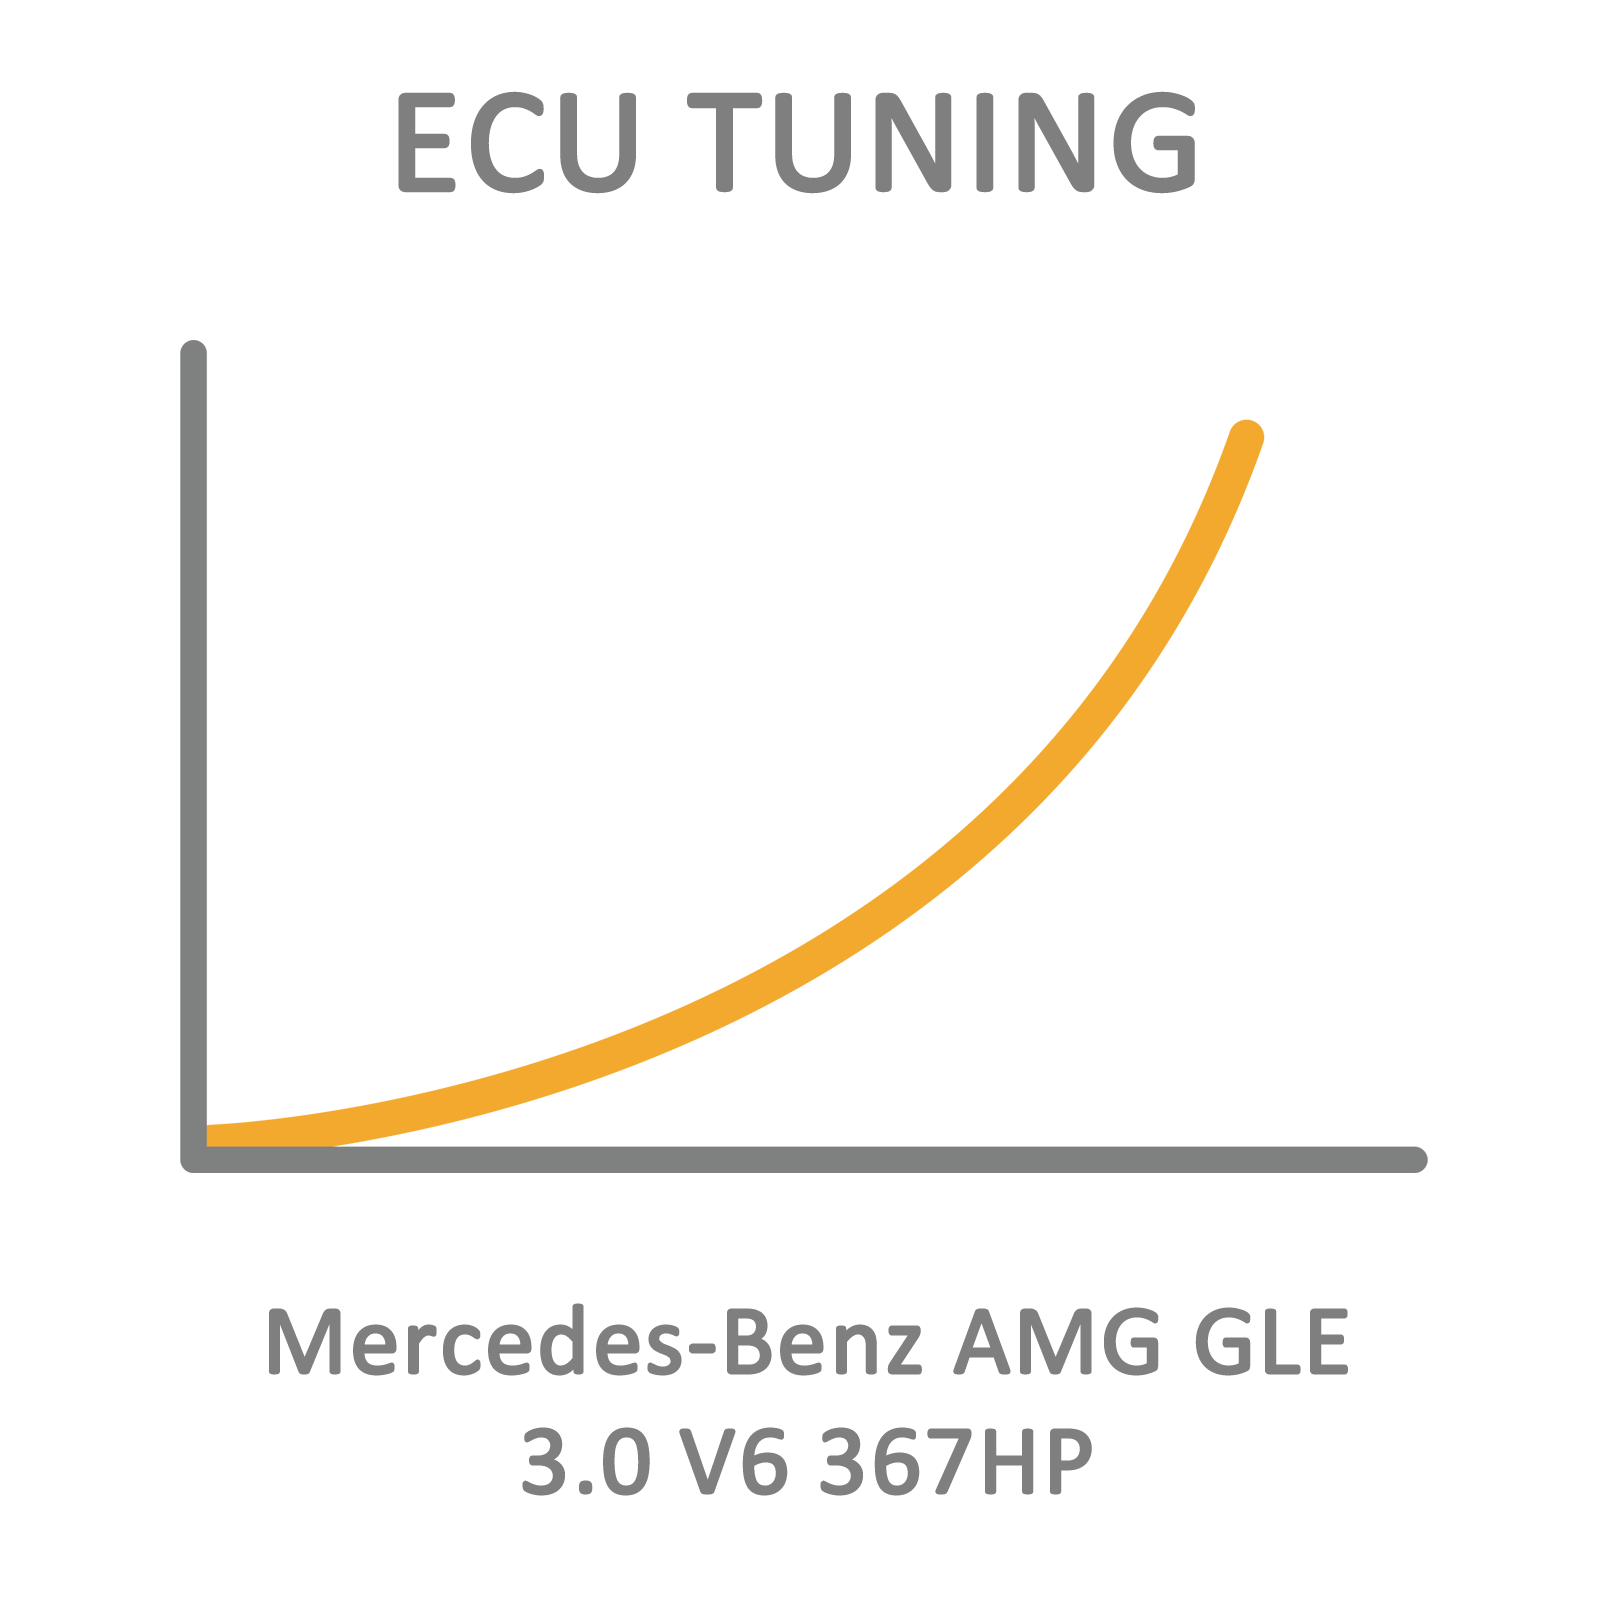 Mercedes-Benz AMG GLE 3.0 V6 367HP ECU Tuning Remapping